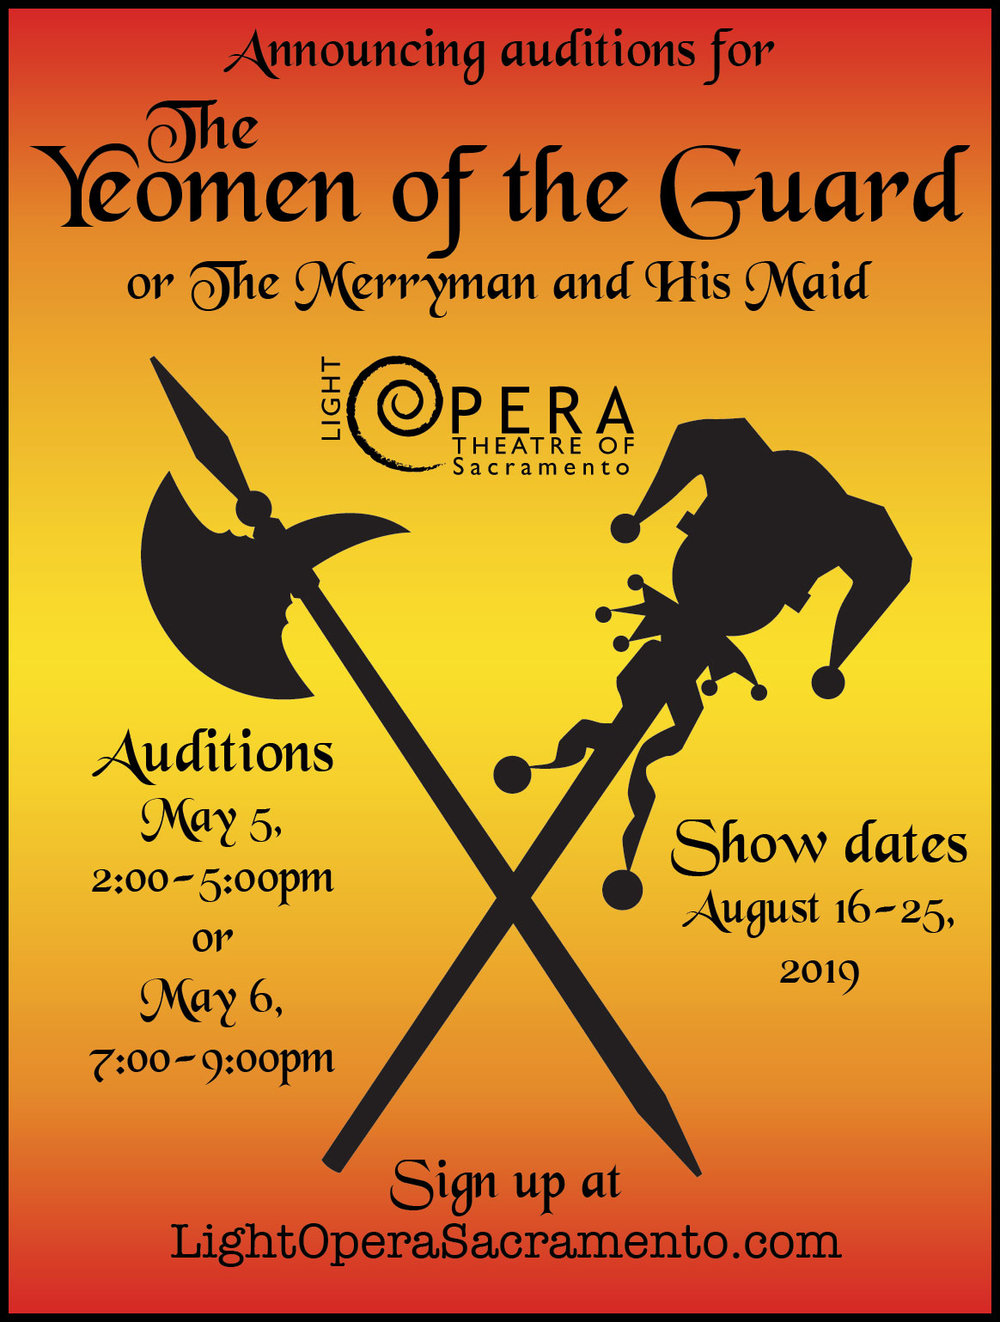 Yeomen of the Guard - PRODUCTION DATESAugust 16, 17, 18 and August 22, 23, 24, and 25, 2019DIRECTING TEAMStage Directors: Debbie and Mike BaadMusic Director: Anne-Marie Endres